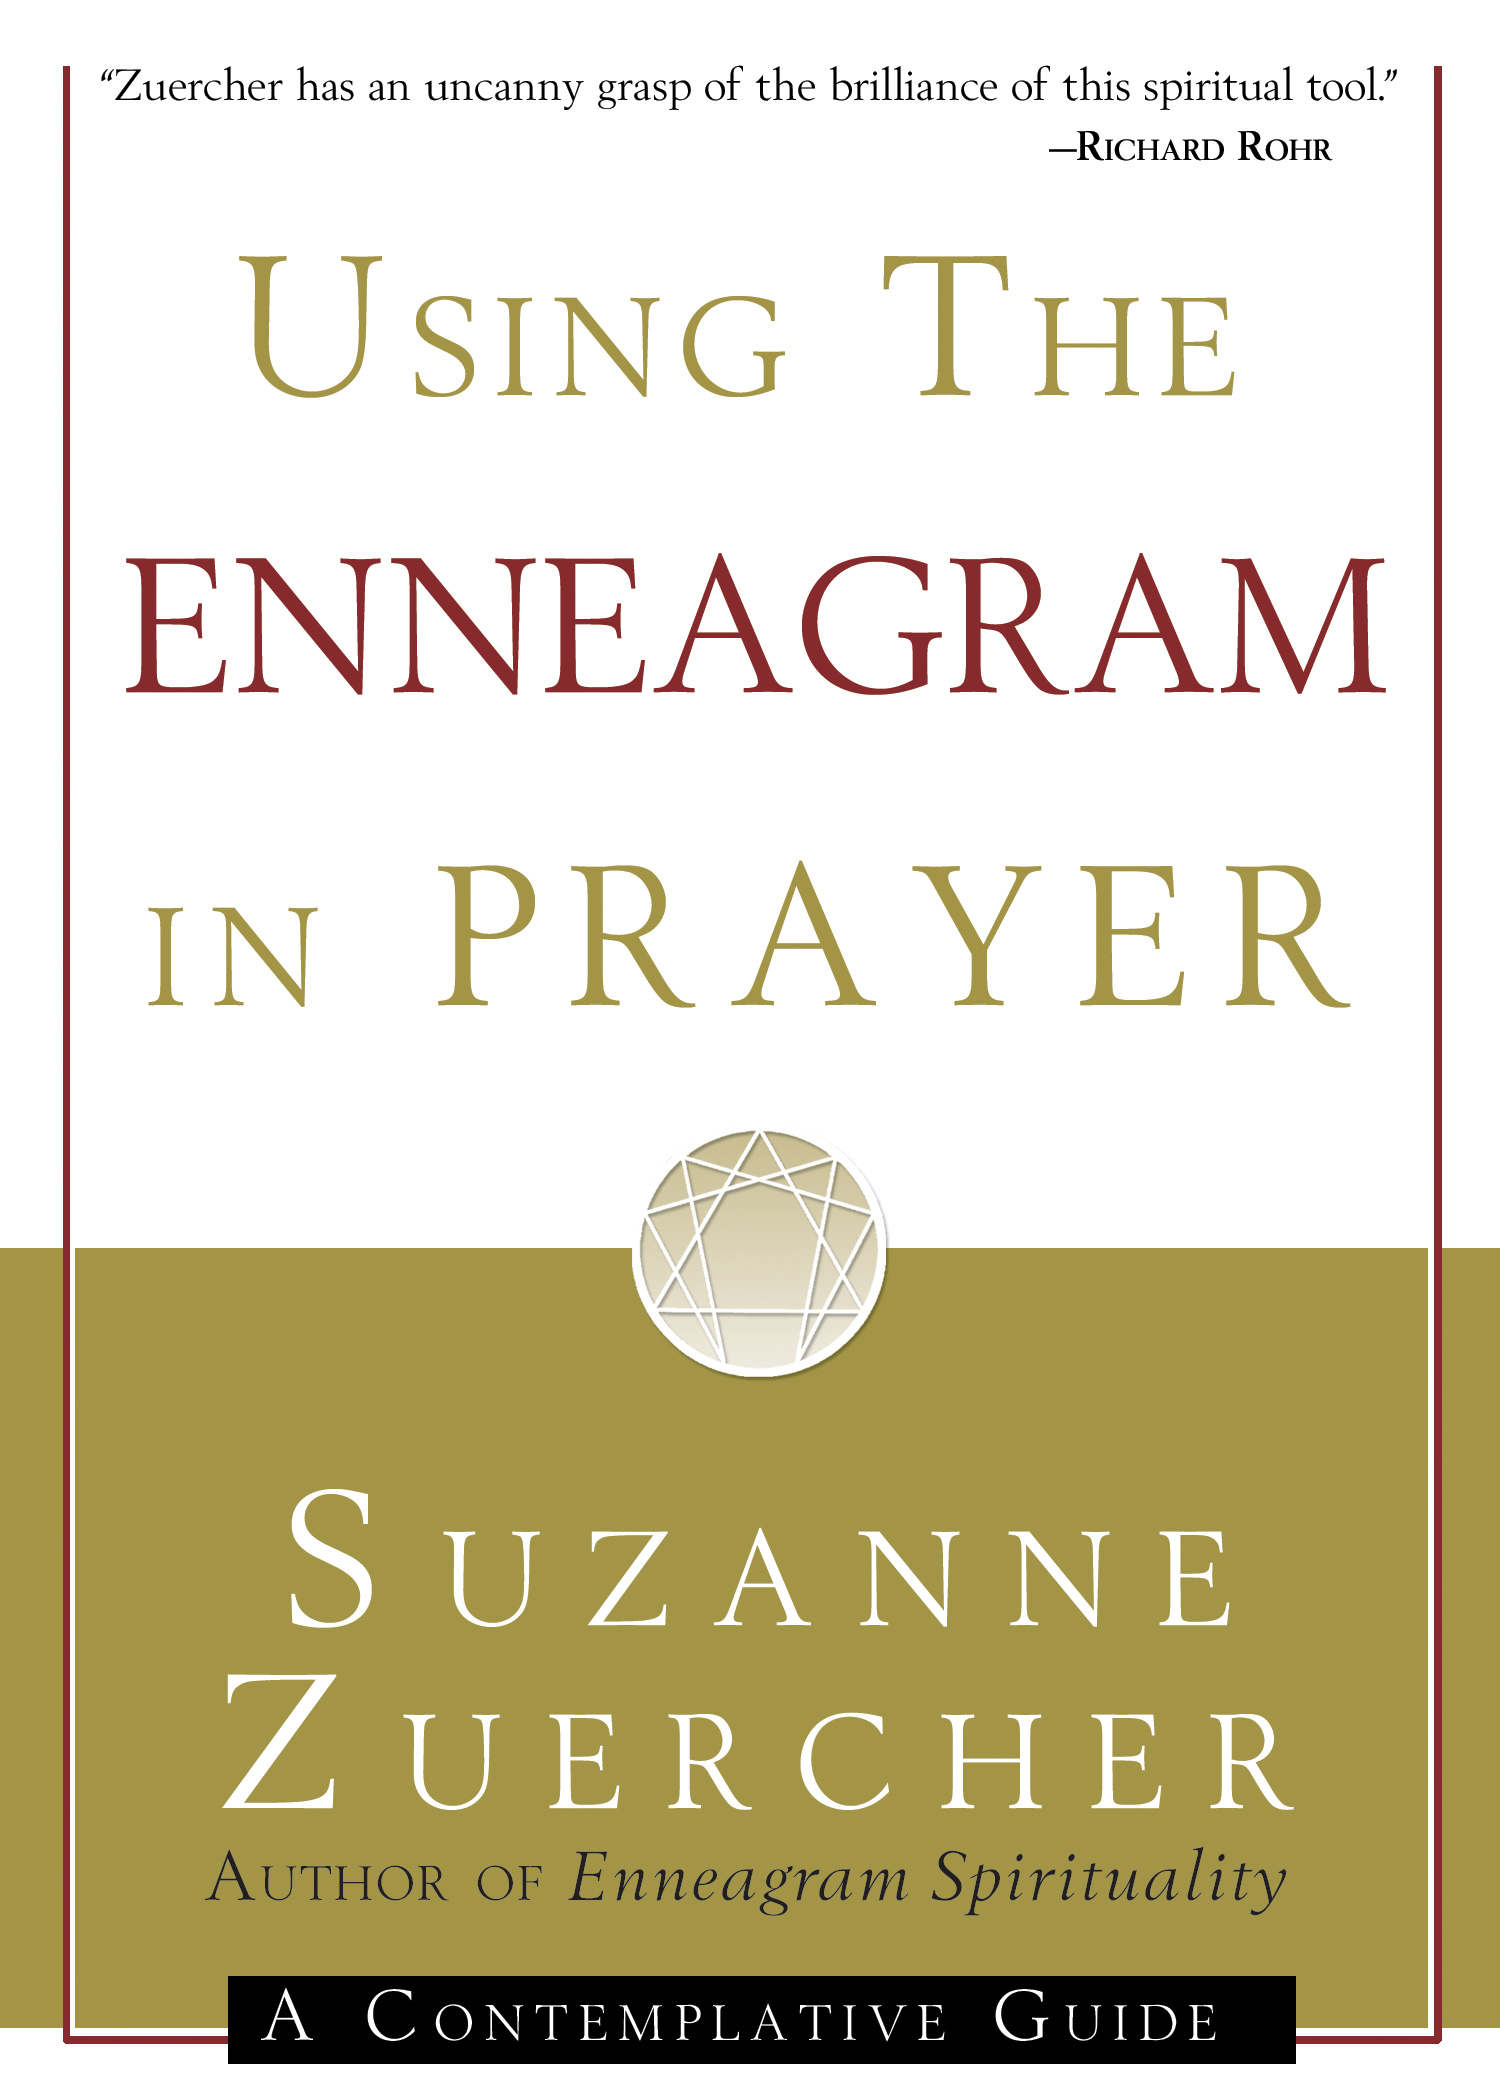 Using the Enneagram in Prayer